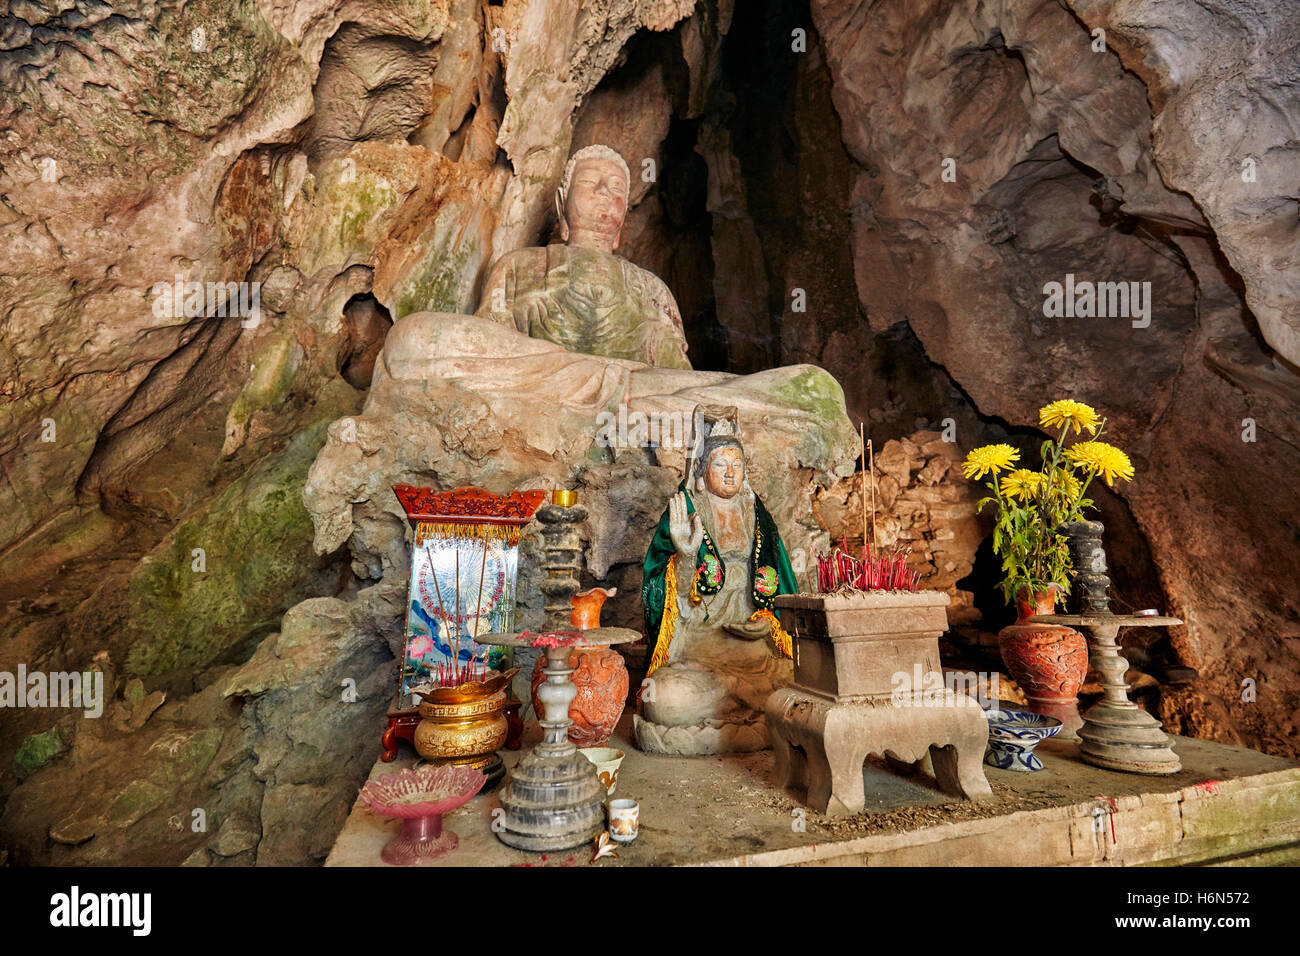 Seated Buddha statue in Tang Chon Cave. Thuy Son Mountain, The Marble Mountains, Da Nang, Vietnam. - Stock Image